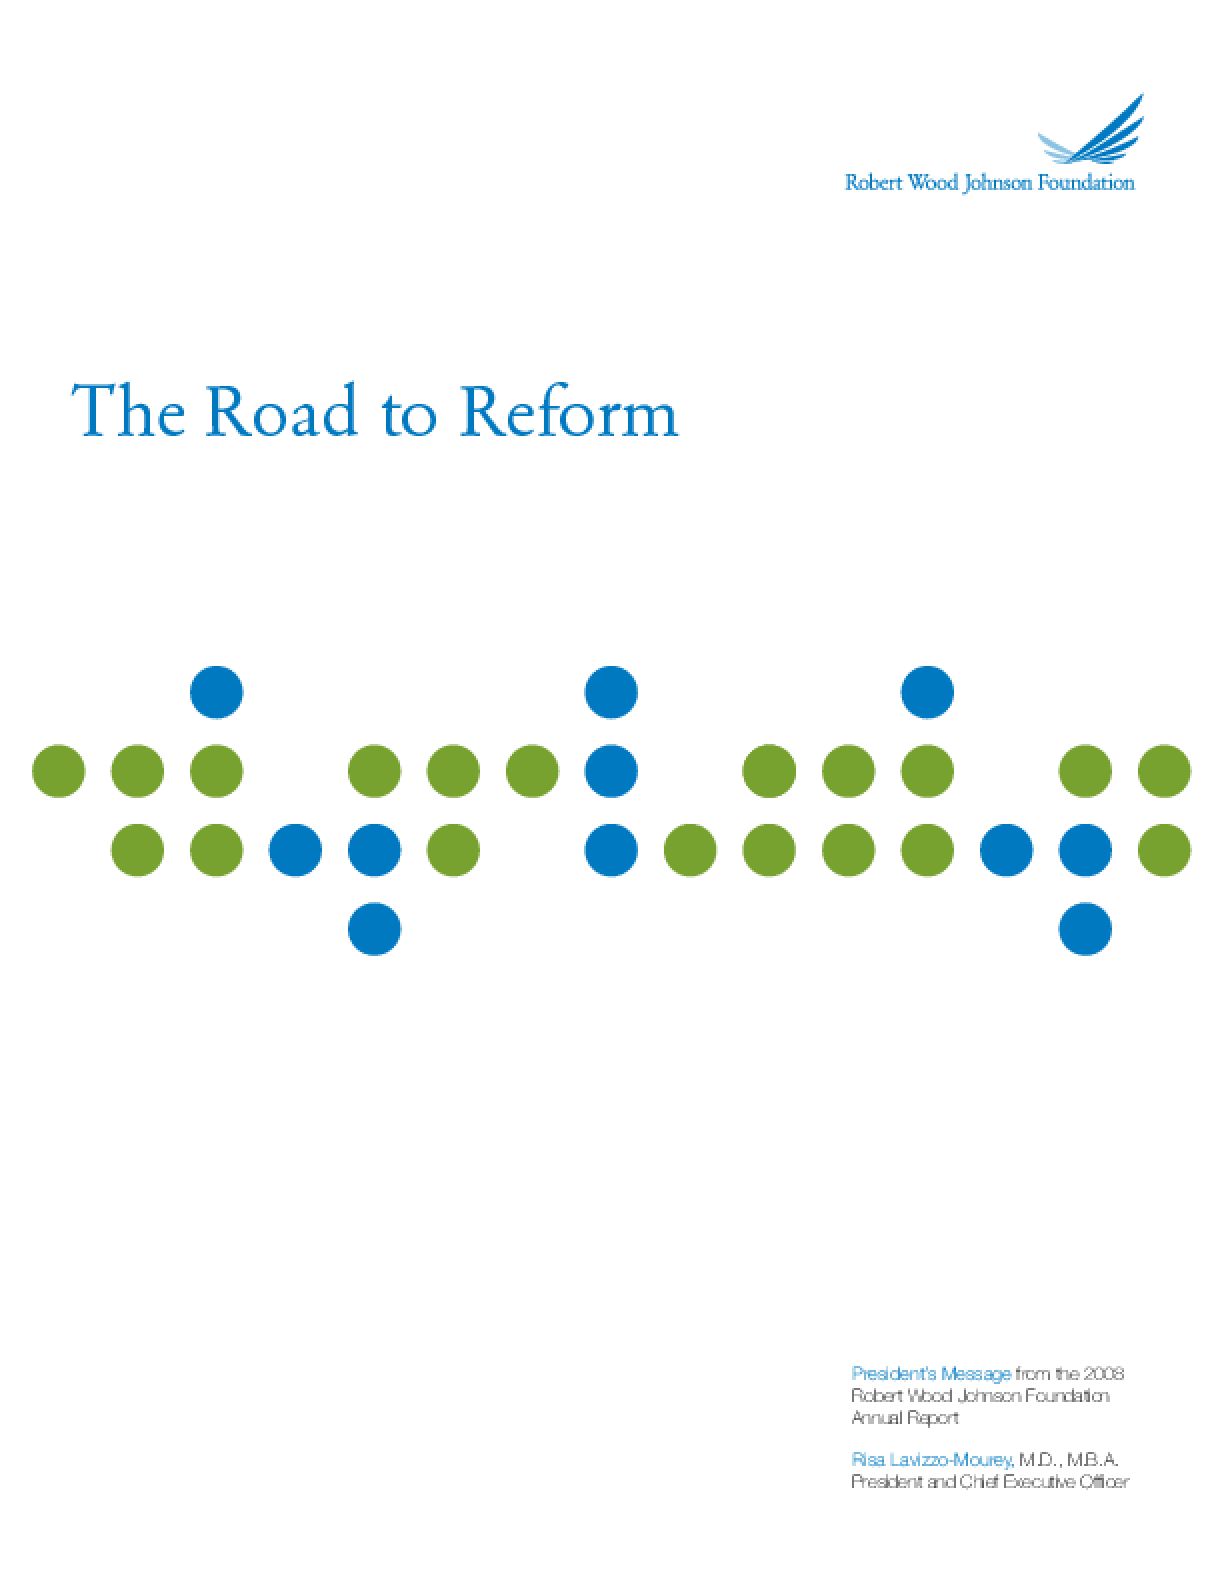 Robert Wood Johnson Foundation - 2008 Annual Report: The Road to Reform